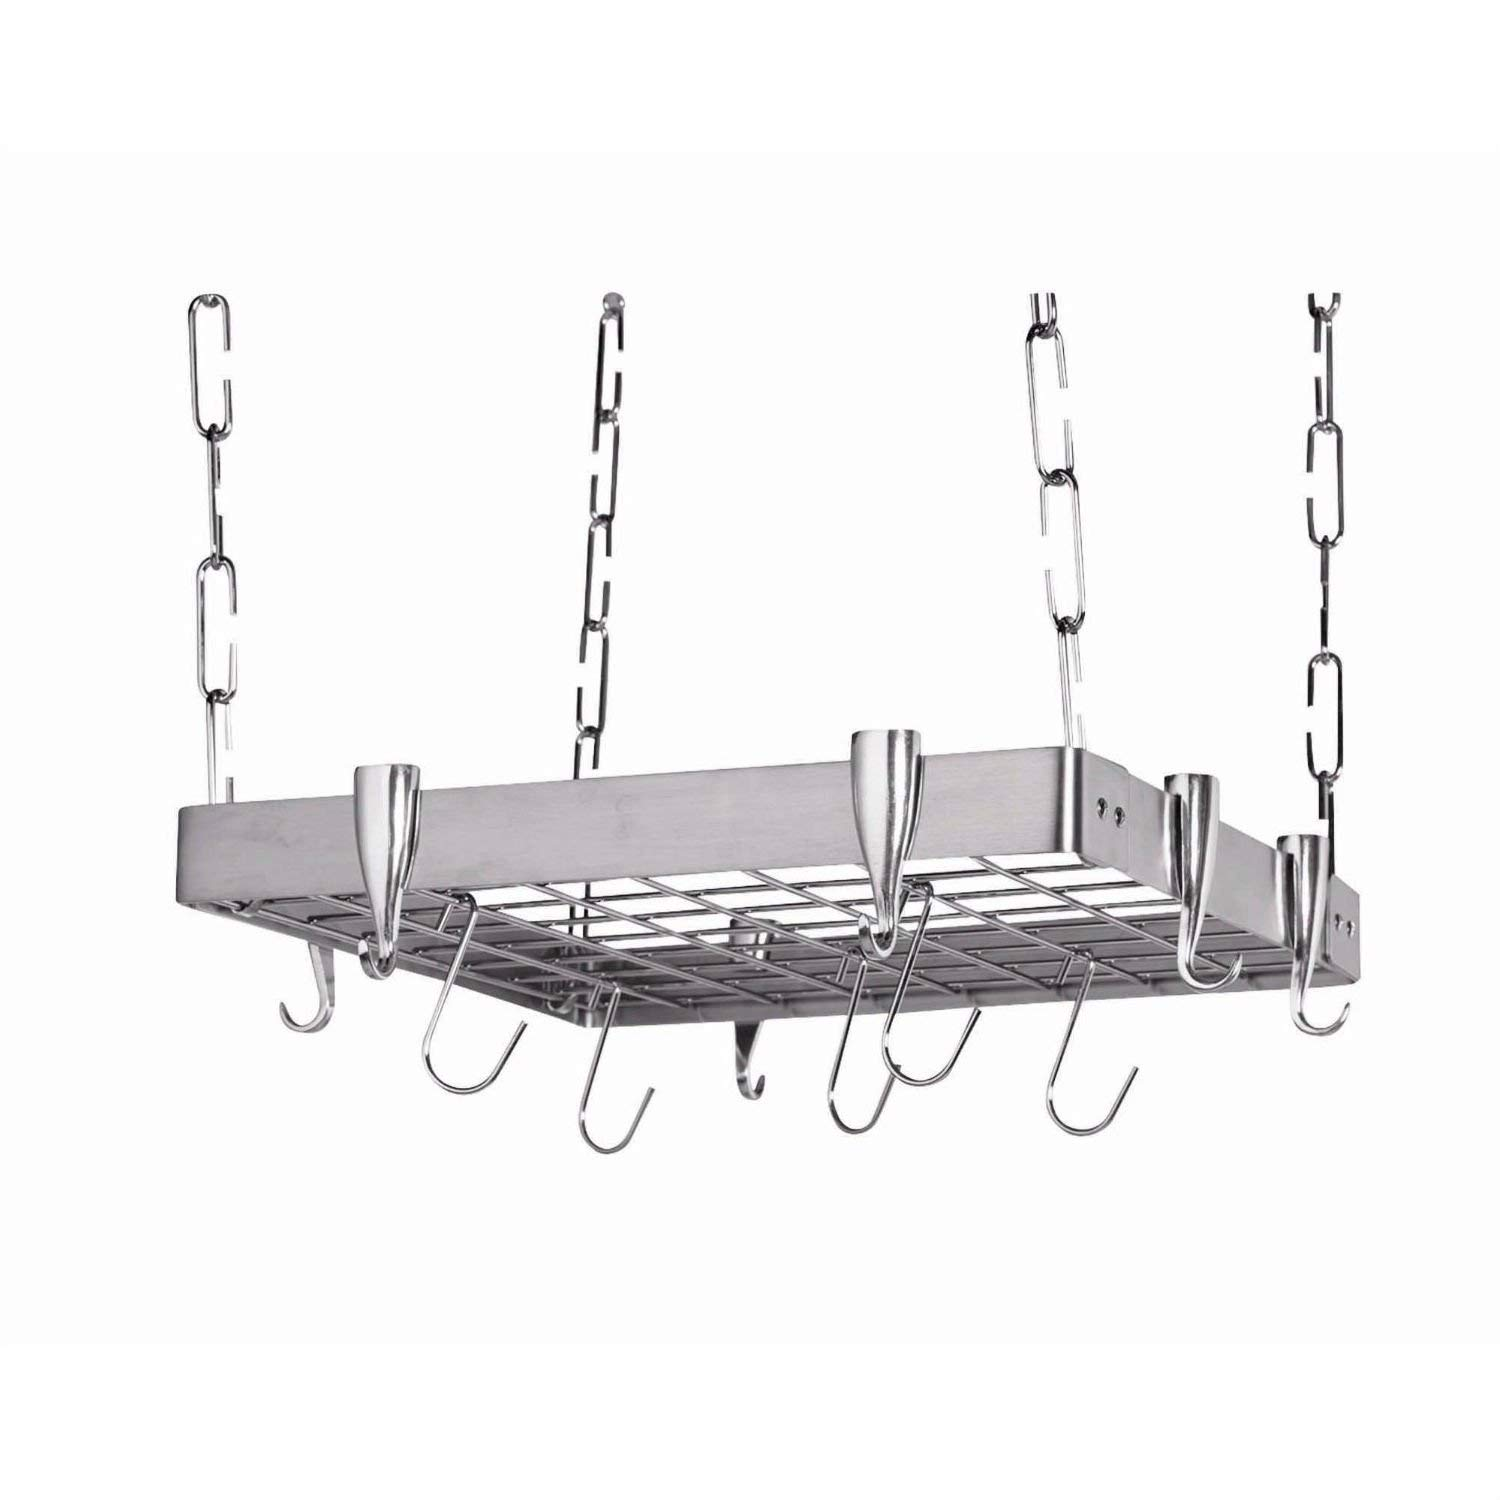 Trustpurchase Square Stainless Steel Ceiling Hanging Pot Rack, Ideal for Use Over Your Kitchen Stove for Rapid Storage and Elegant Display, Its Steel Frame Makes for Sleek Design and A Rugged Product